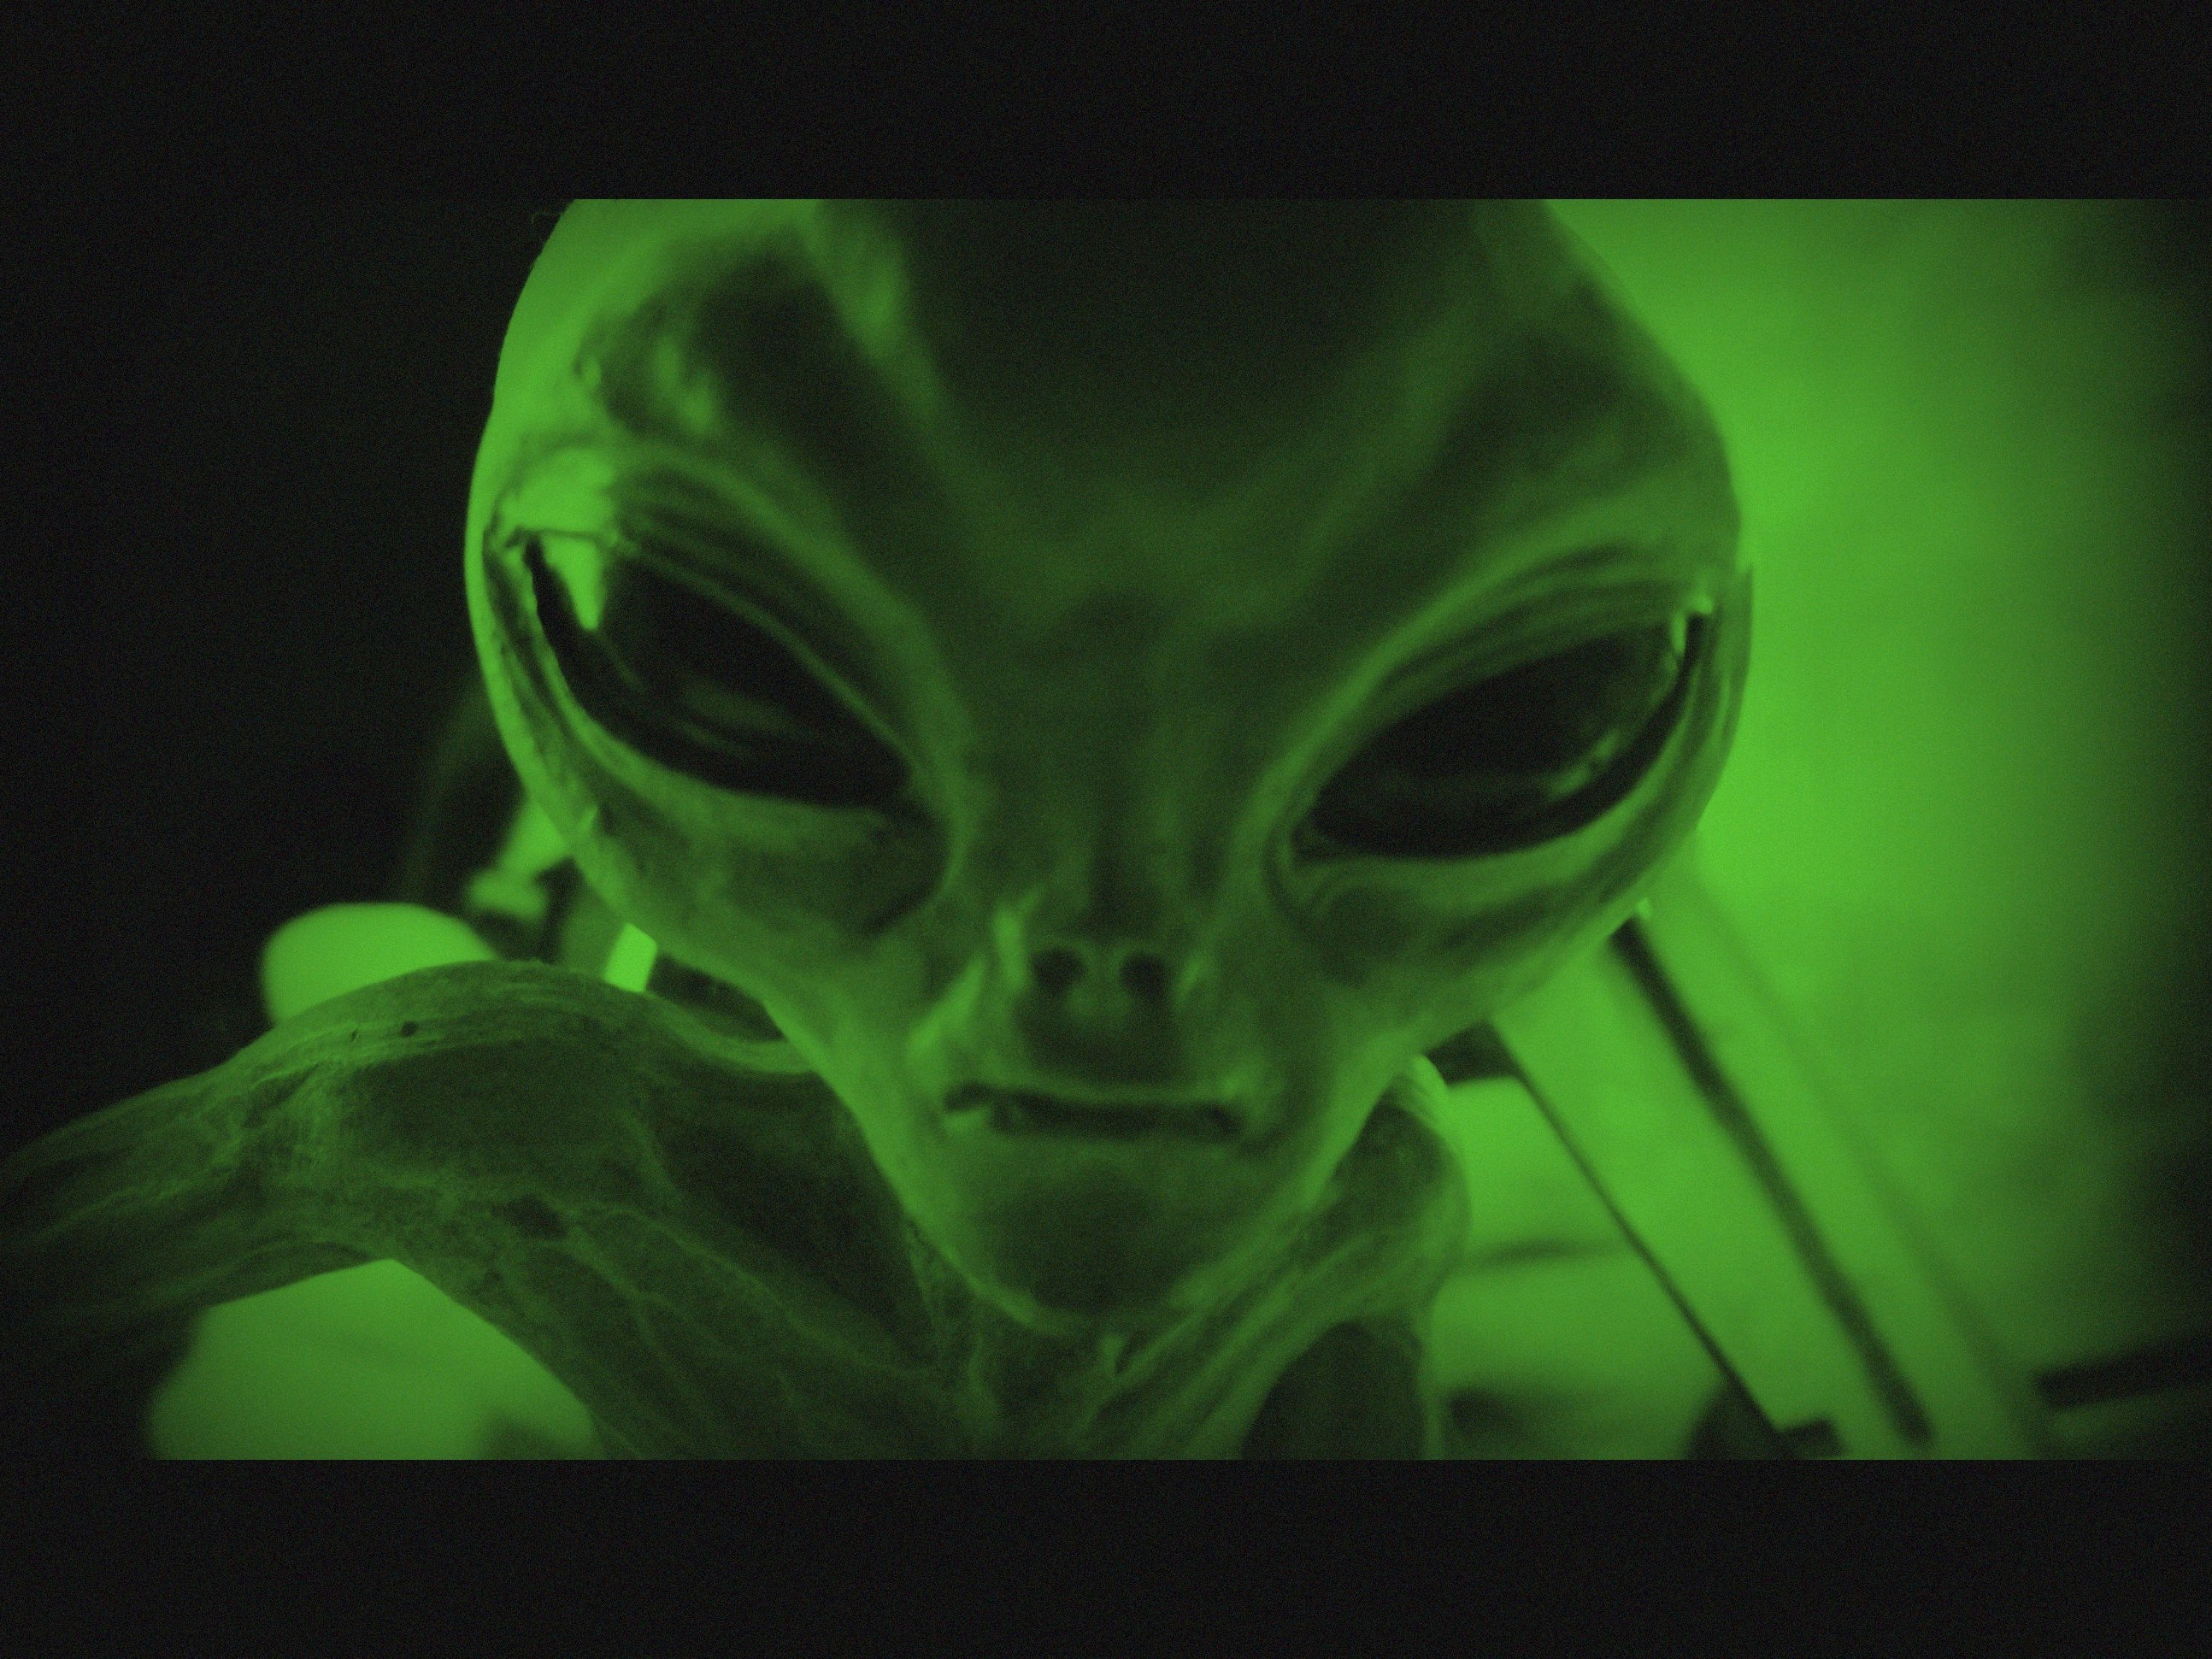 No, There Is No Proof Aliens Run the Universe